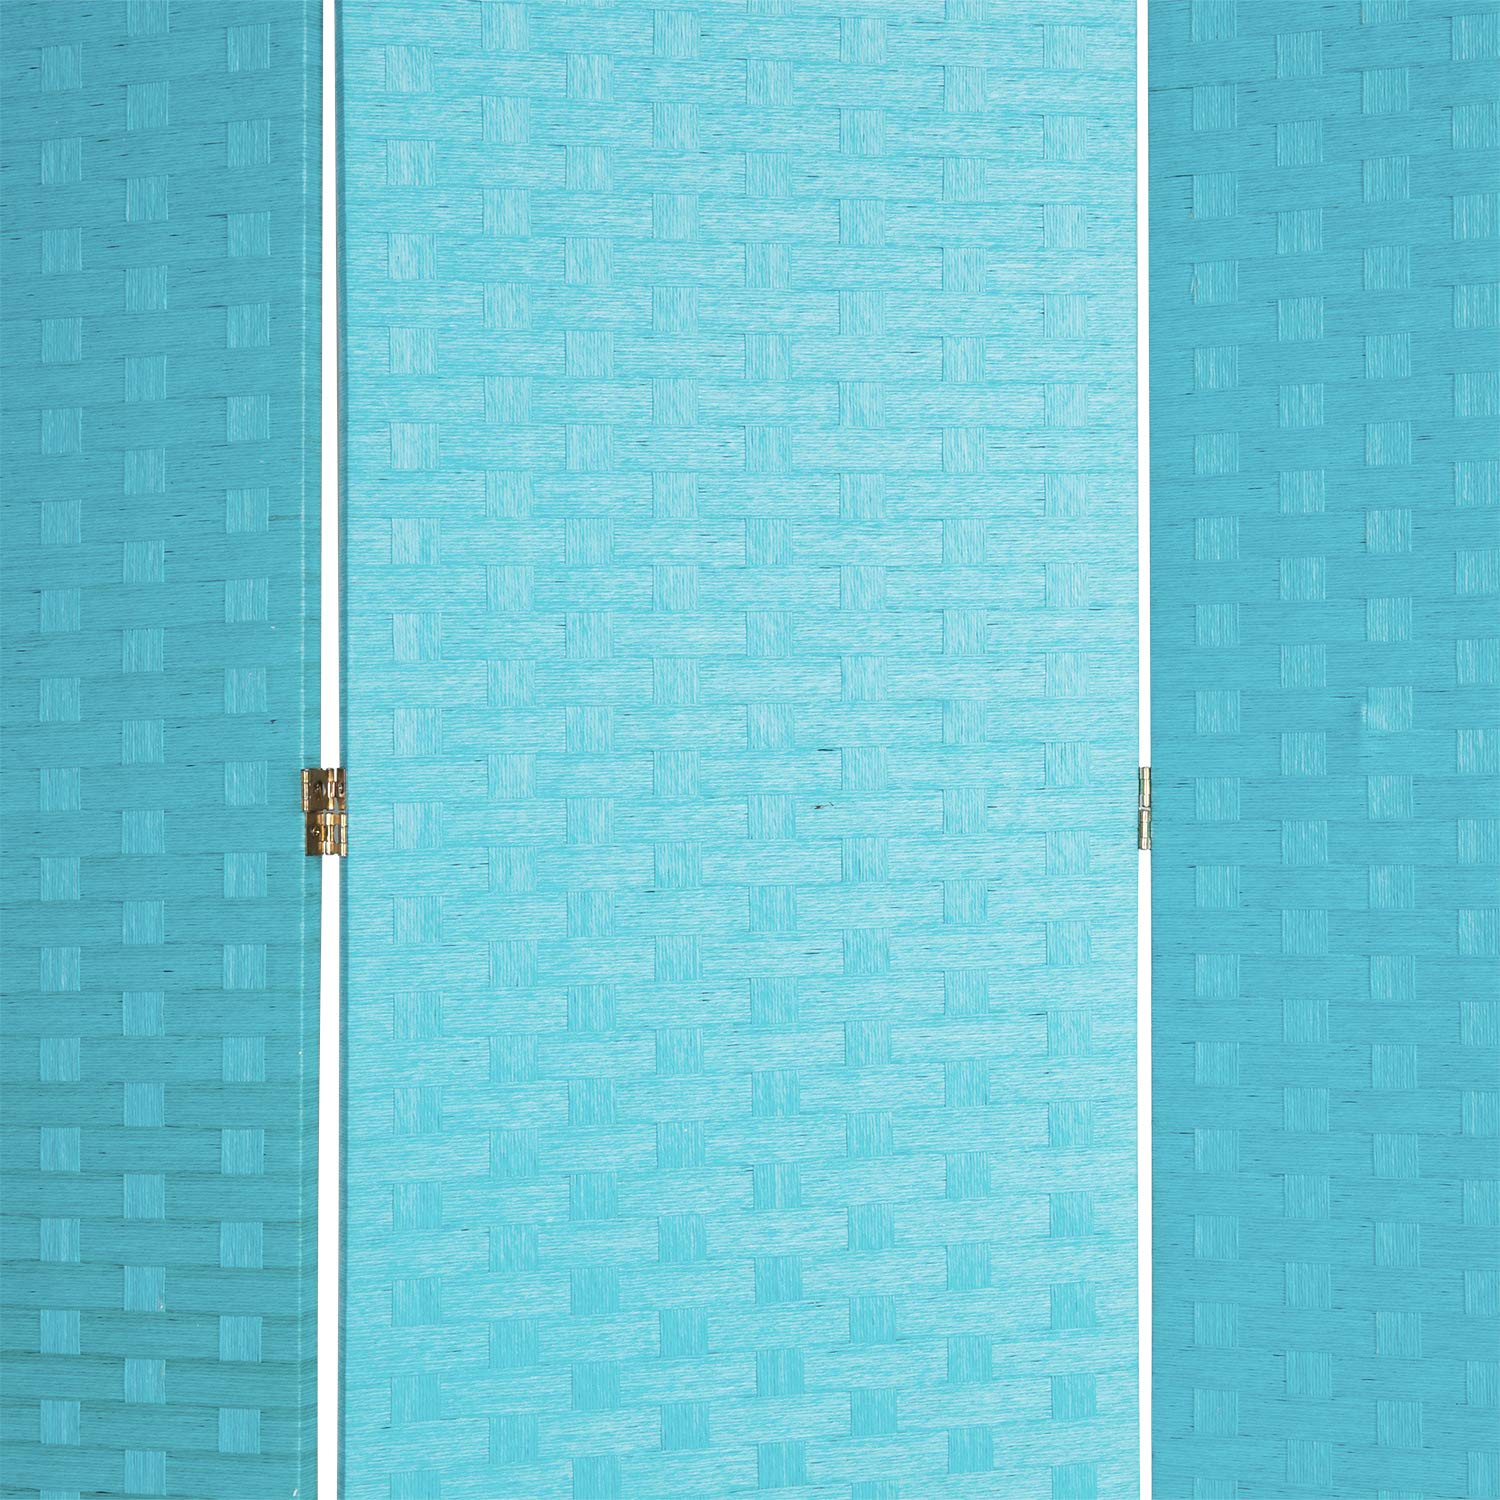 MyGift 3-Panel Aqua Blue Woven Rattan Privacy Screen Folding Room Divider with Wood Frame